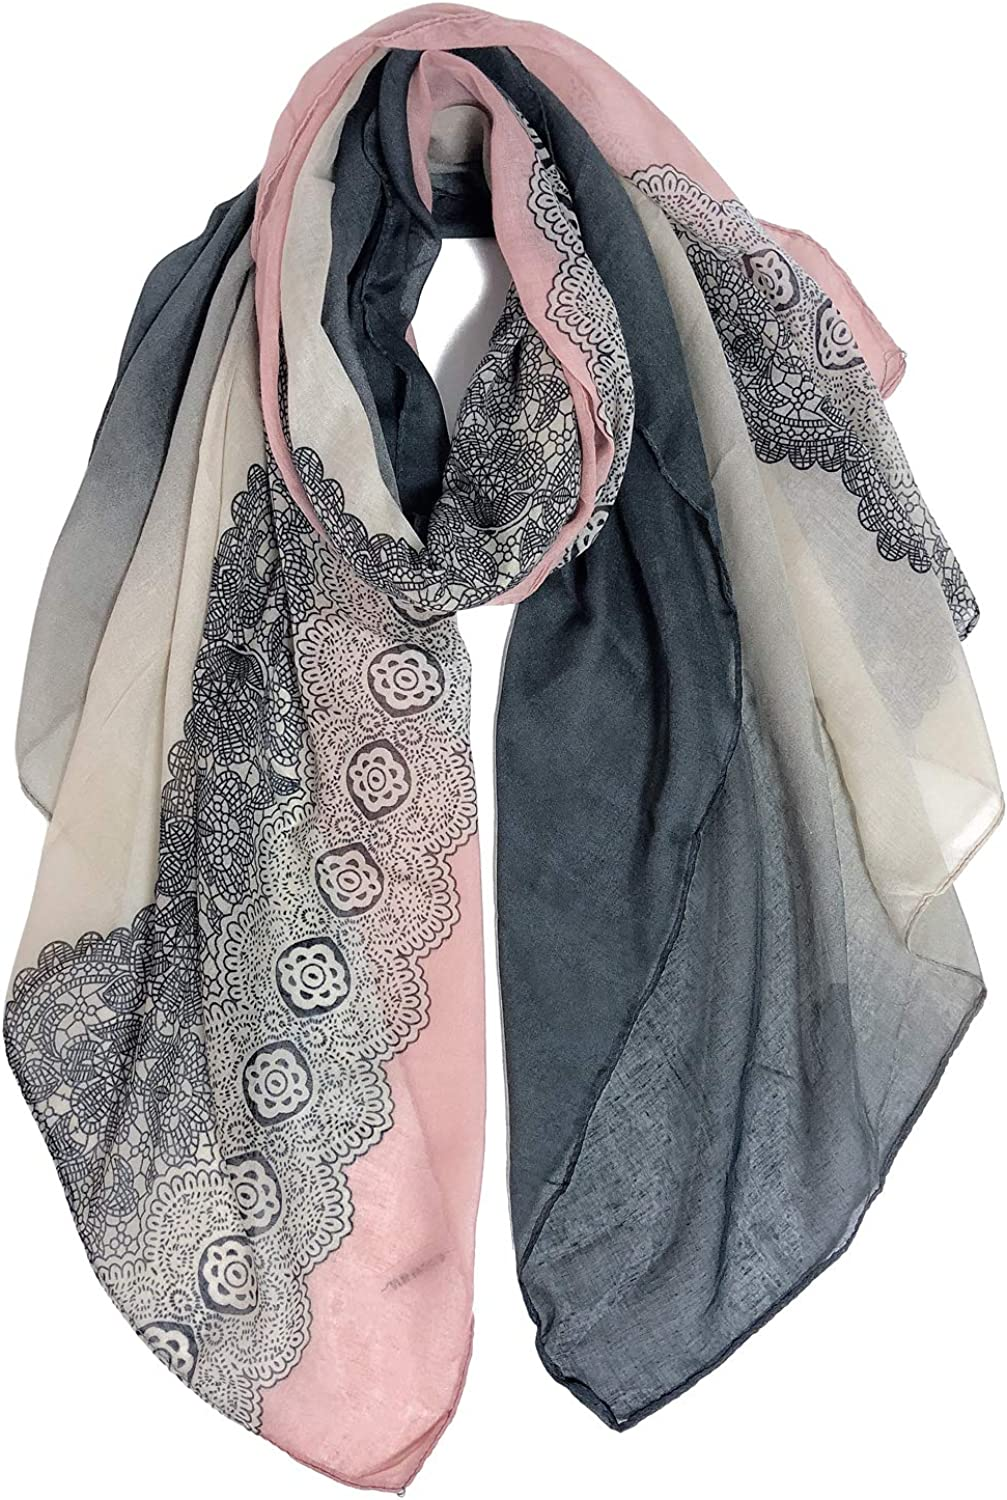 NEW Light Brown Skull Print Multi Way Sarong Scarf Beach Cover Up